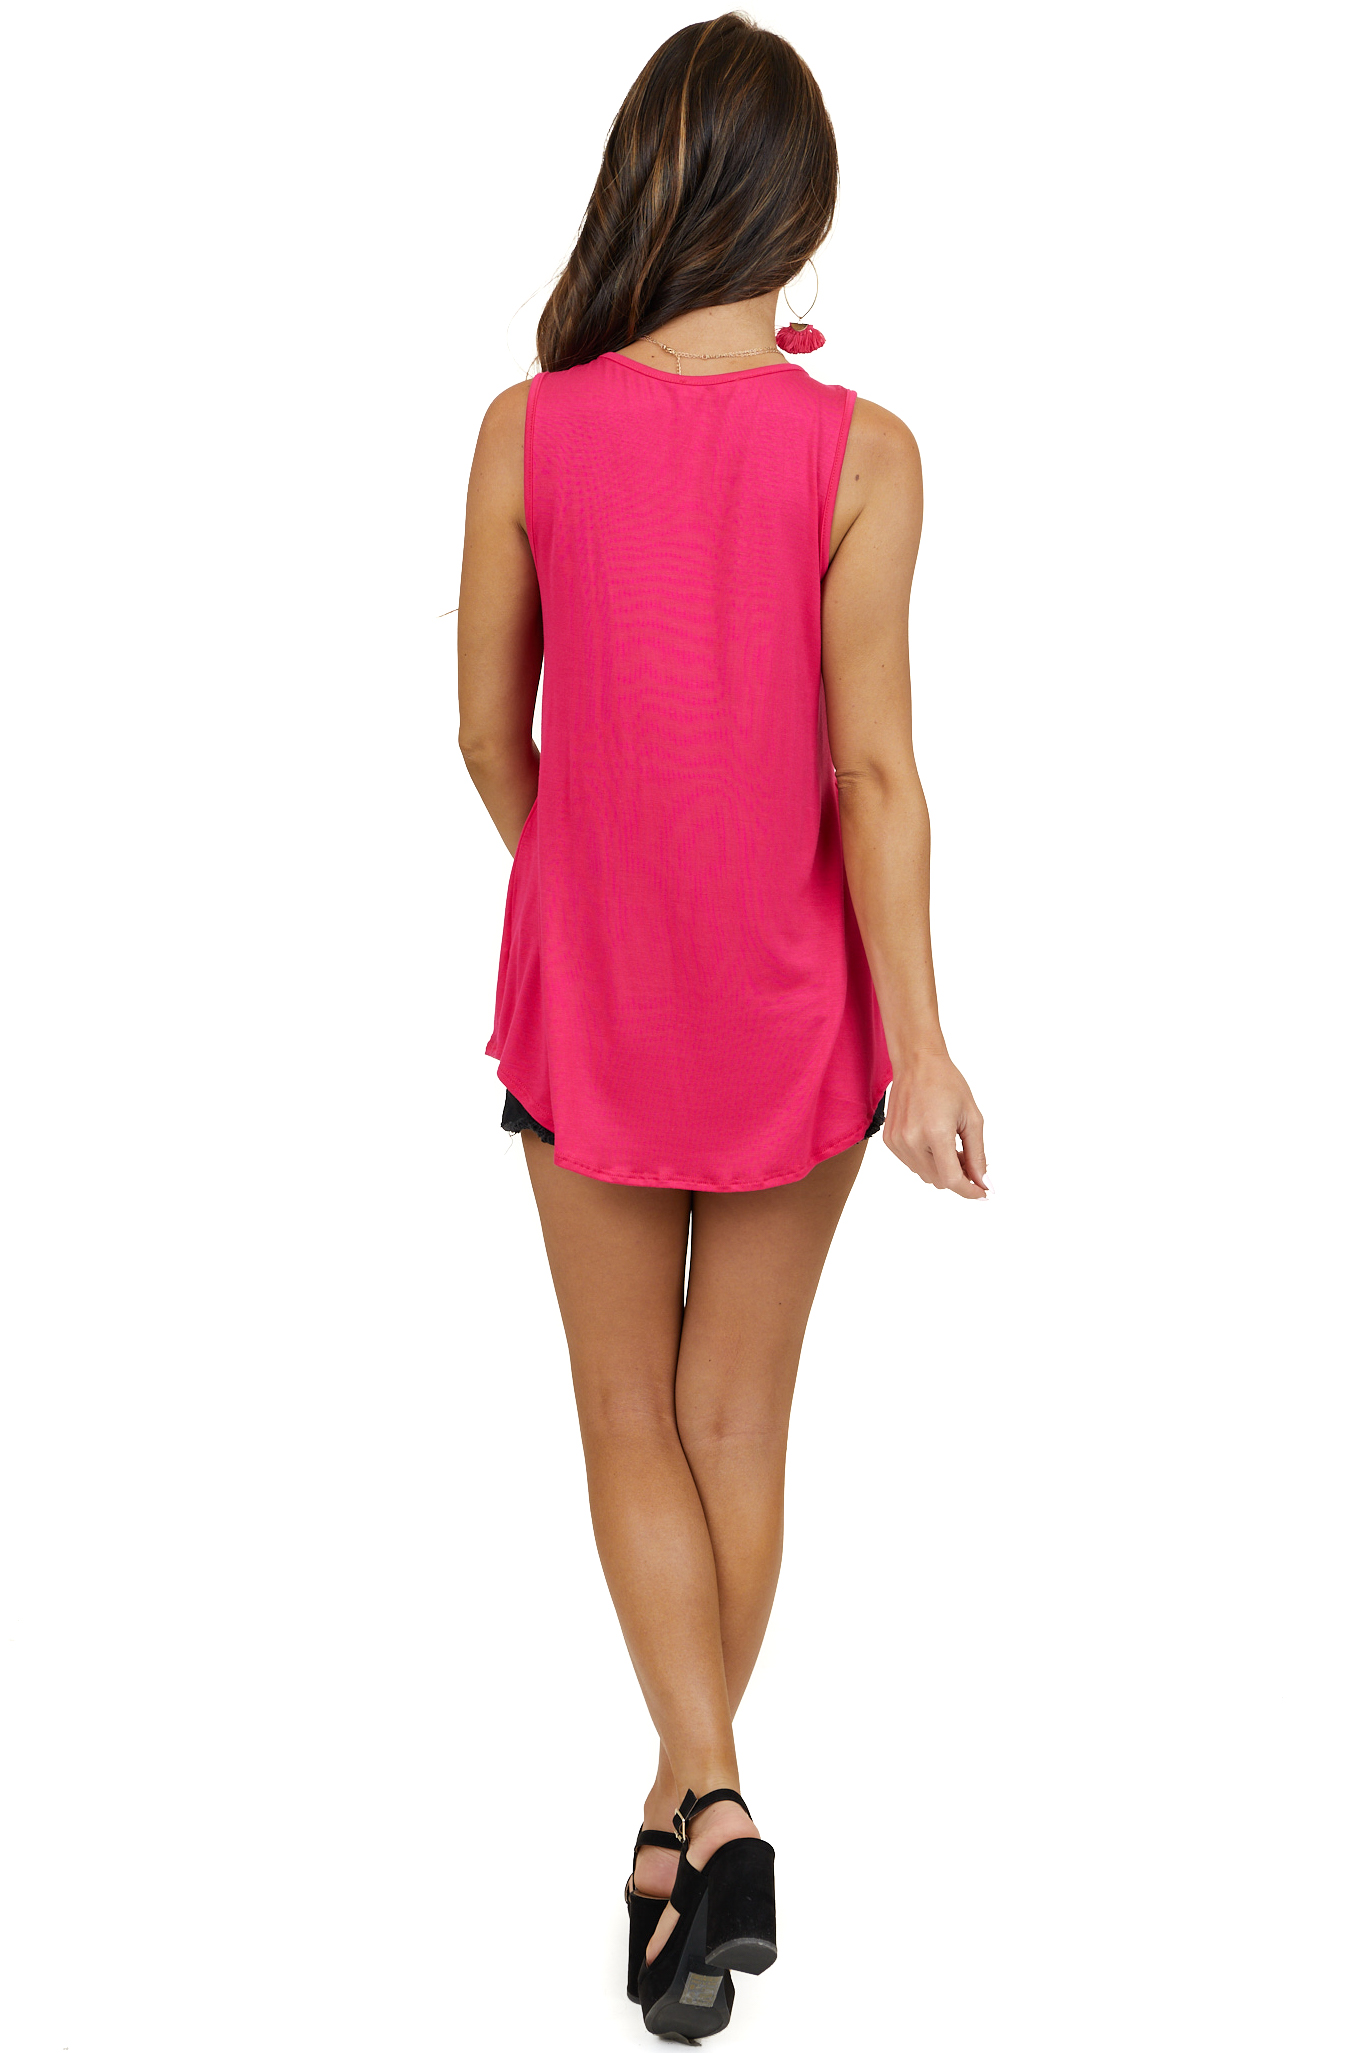 Hot Pink Babydoll Sleeveless Knit Top with Rounded Neckline